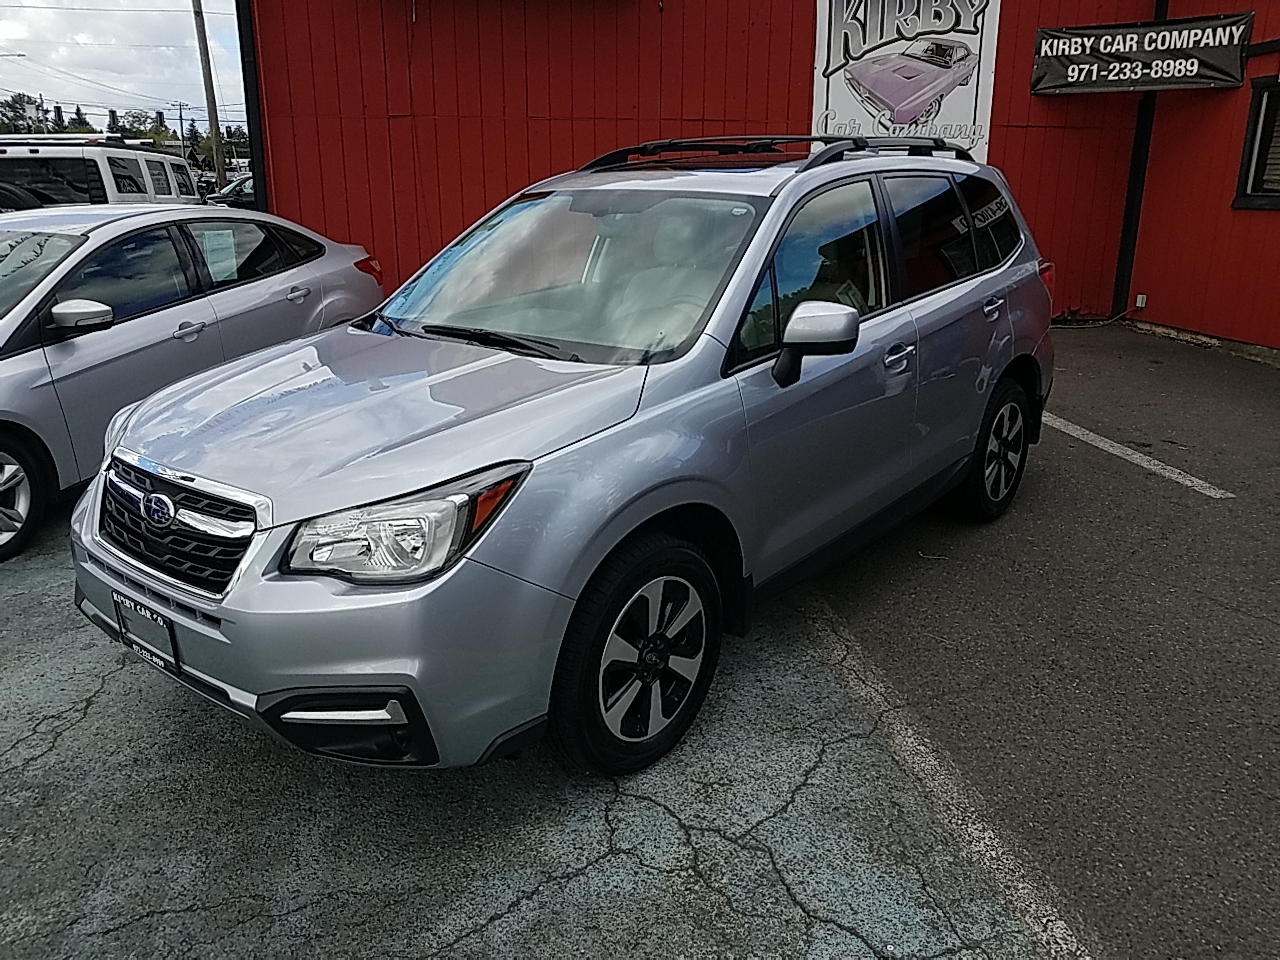 2017 Subaru Forester 2.5i Premium WARRANTY! CLEAN TITLE! PANO ROOF!